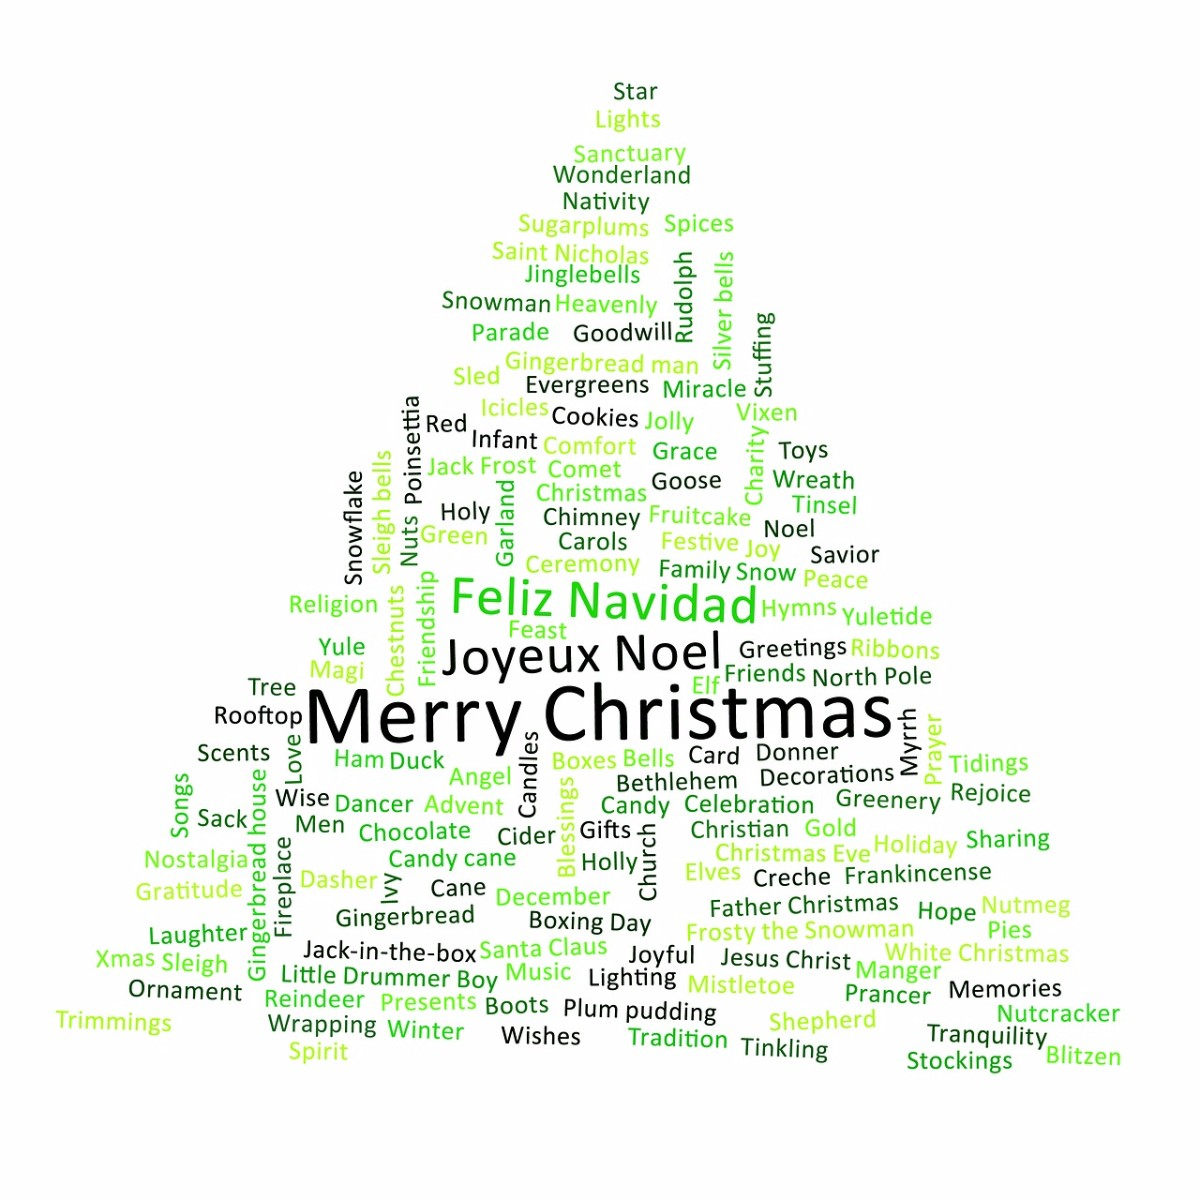 50 Free Merry Christmas Images